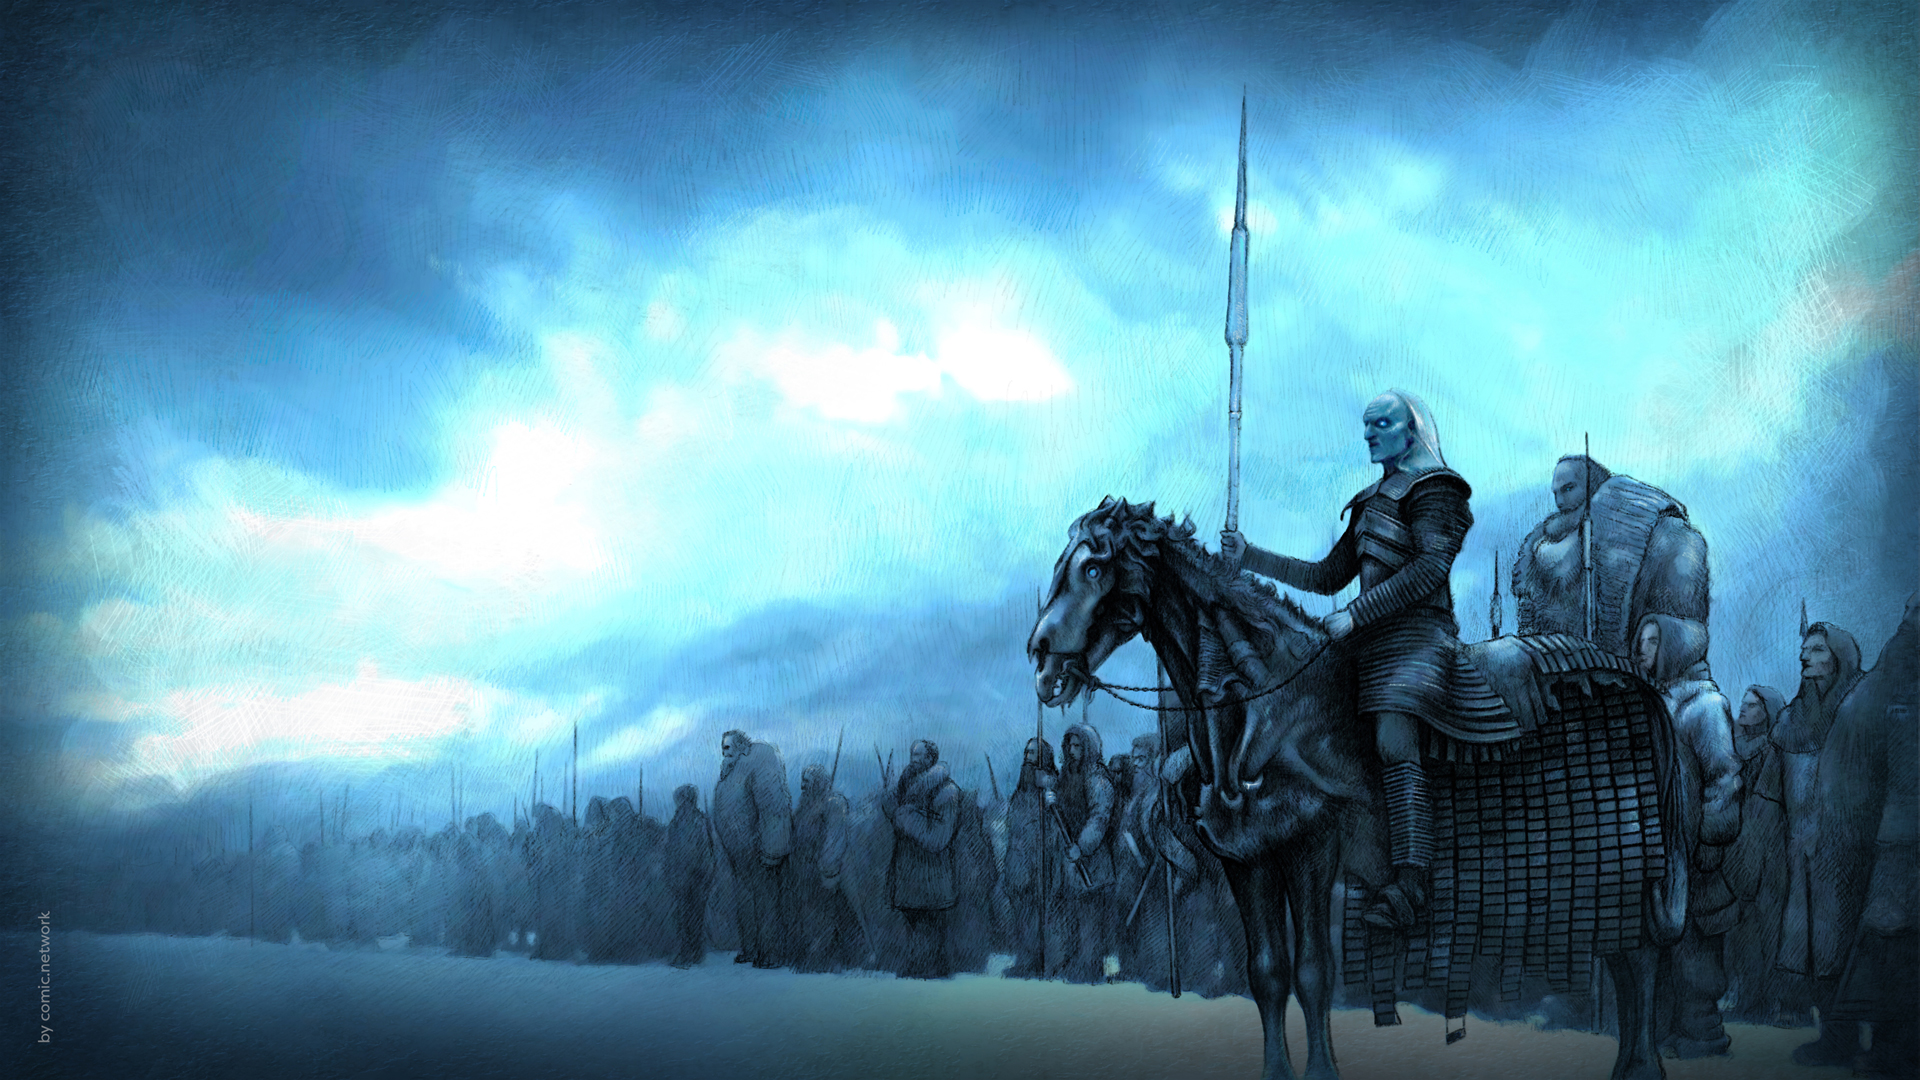 Icedragon - Game Of Throne White Walkers And Dragon - HD Wallpaper